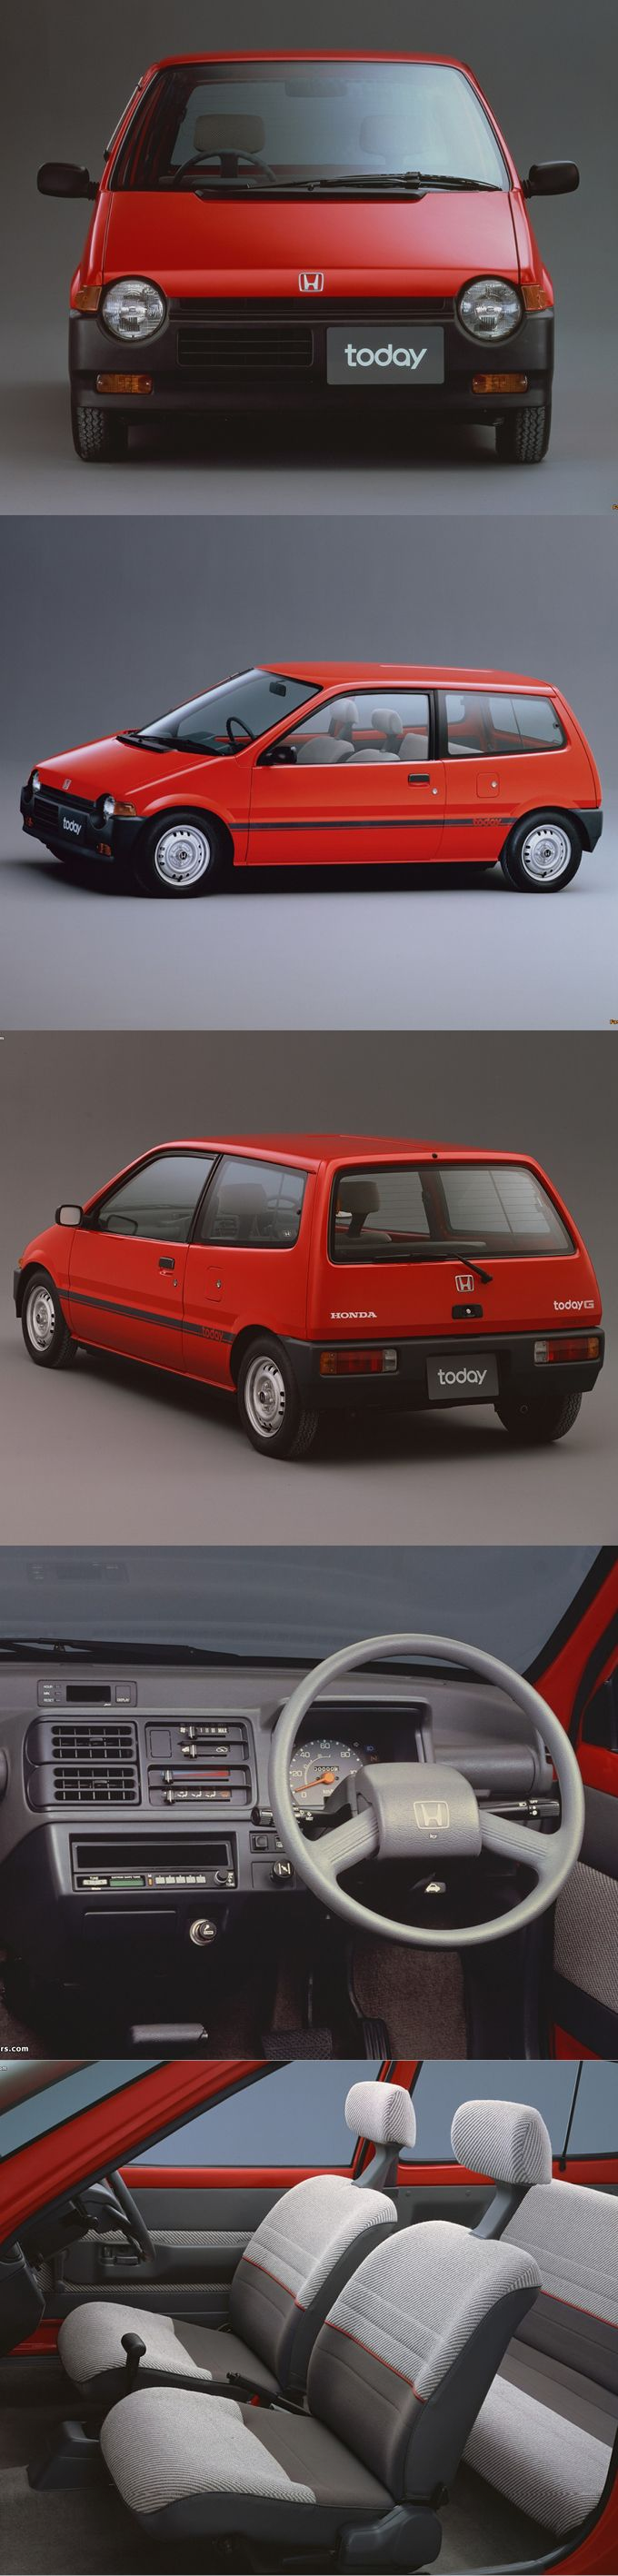 1985 Honda Today / Japan / red / kei-car / 17-148